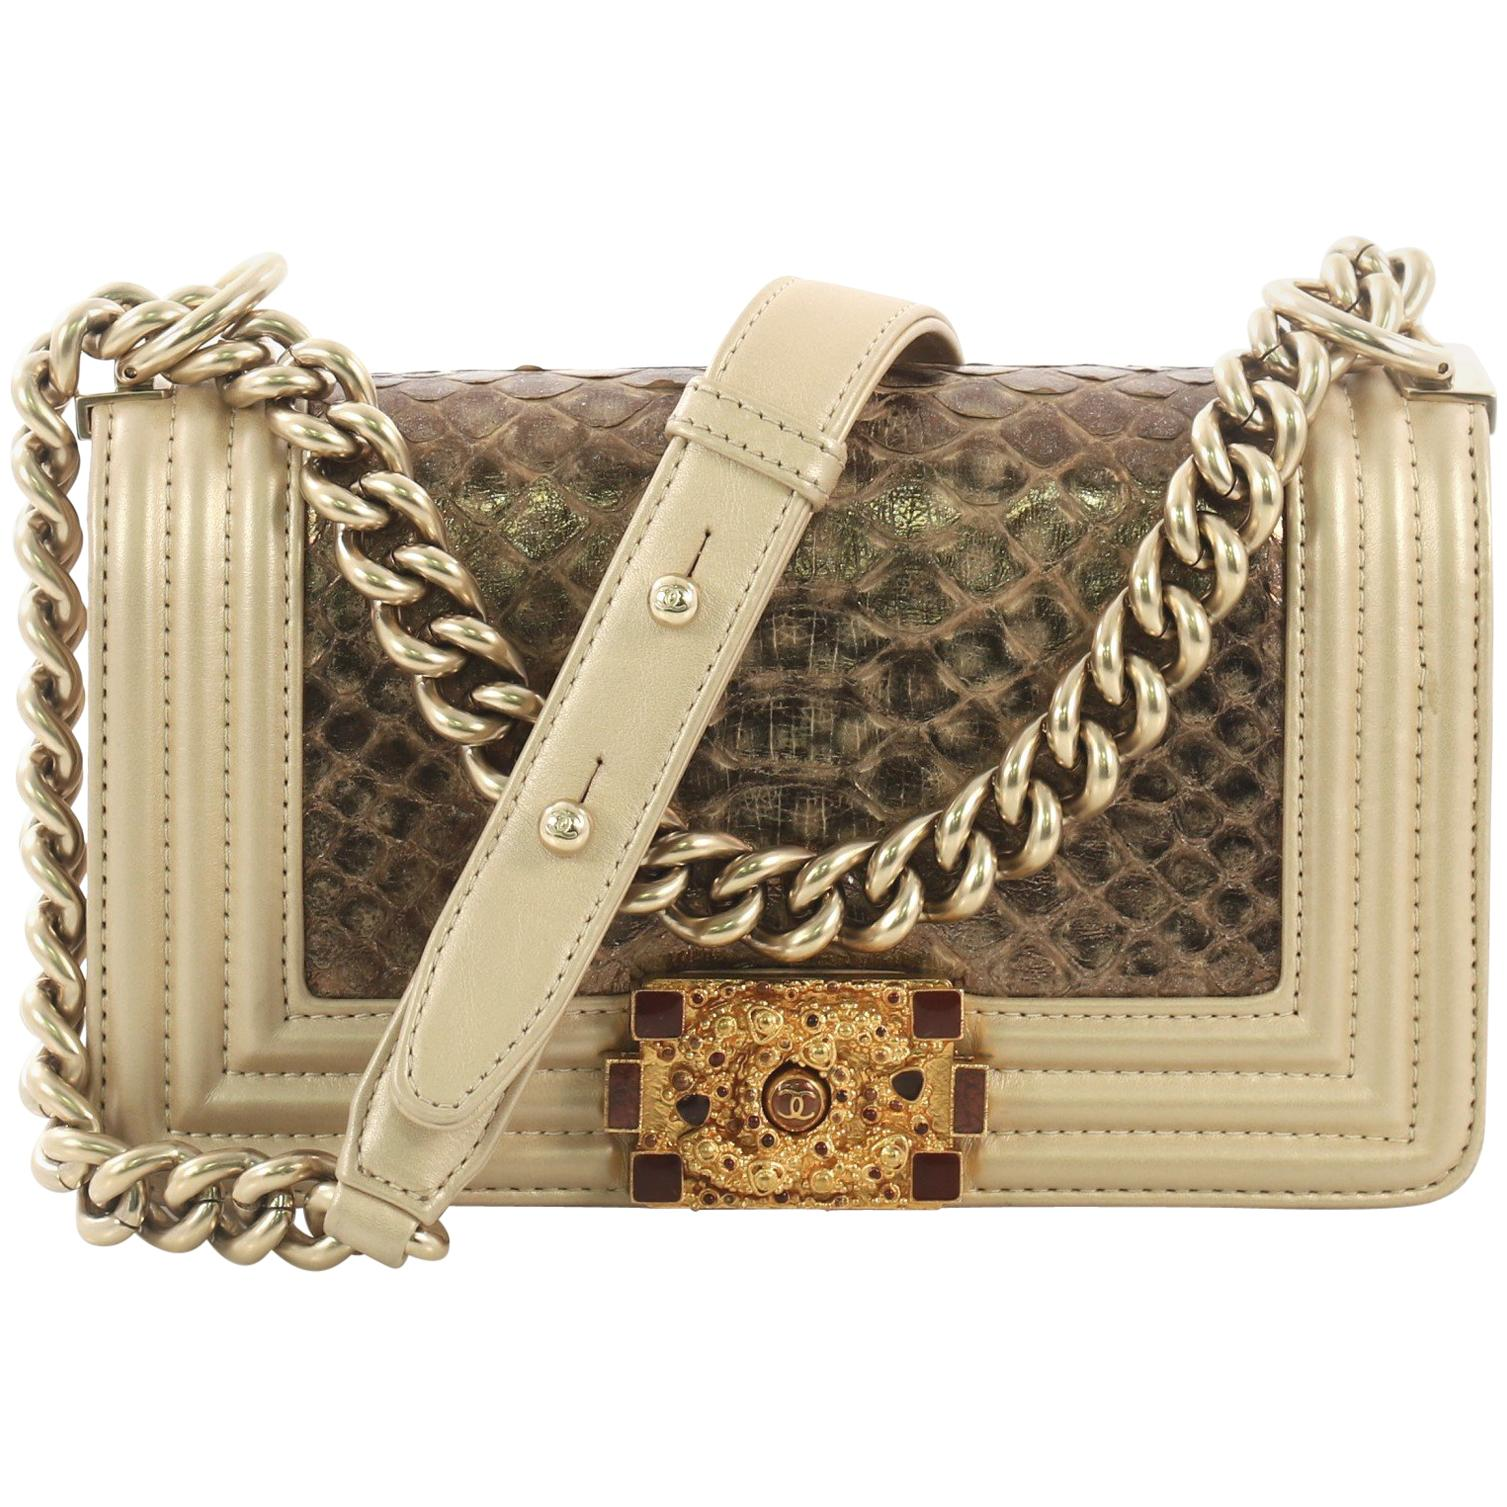 cb2a59f826a8 Vintage Chanel Shoulder Bags - 2,007 For Sale at 1stdibs - Page 3